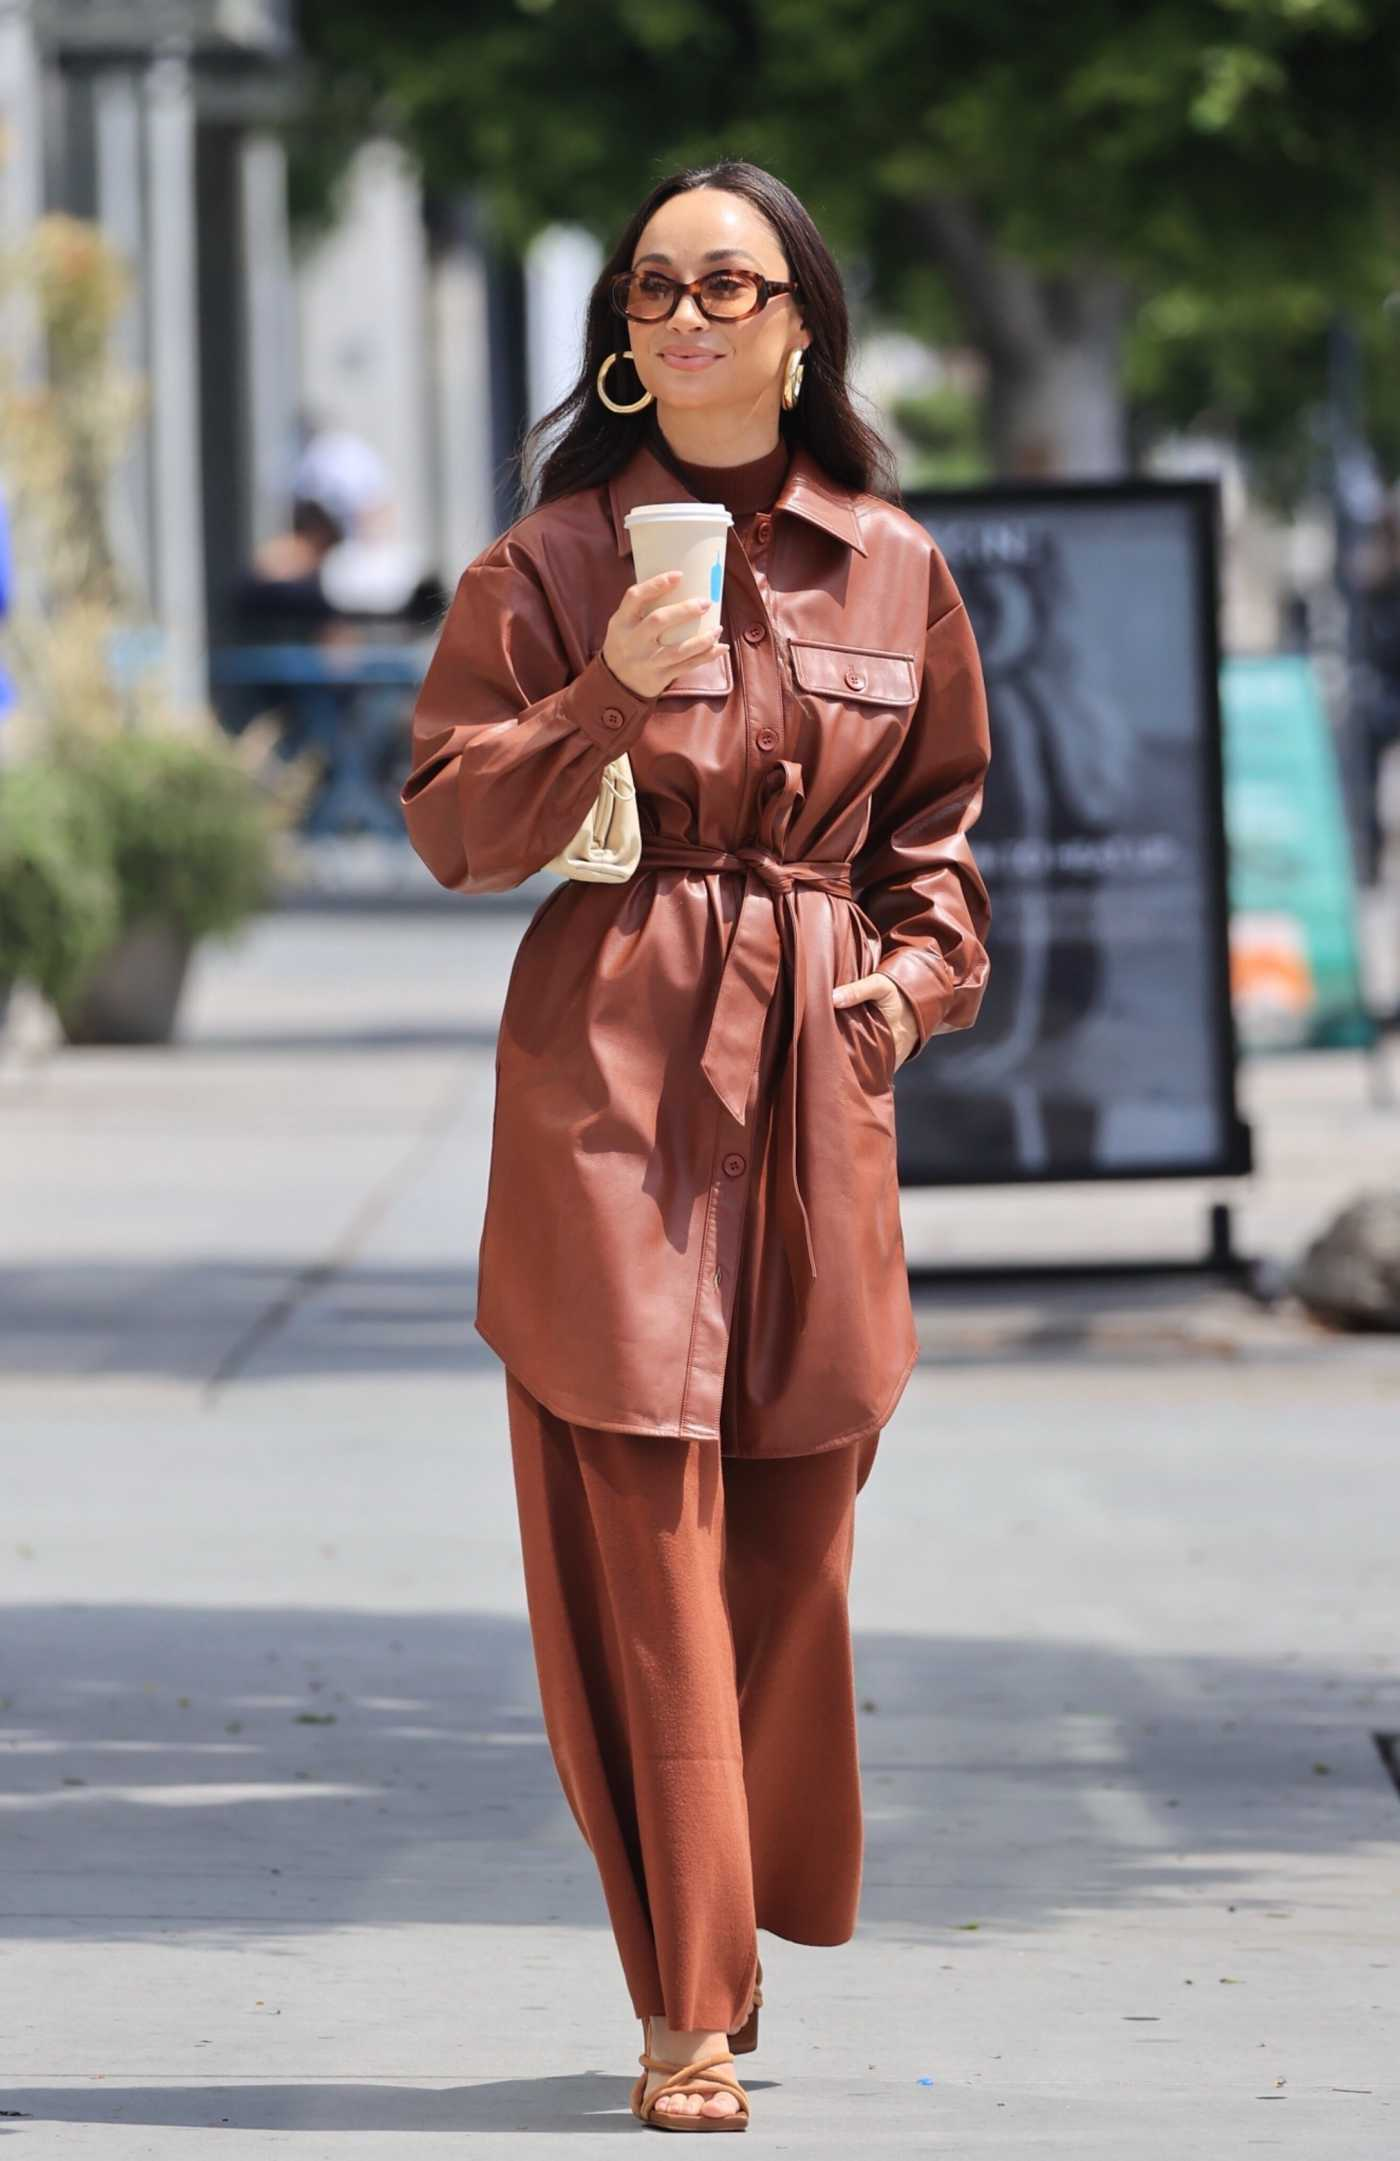 Cara Santana in a Brown Outfit Was Seen Out in West Hollywood 09/02/2021